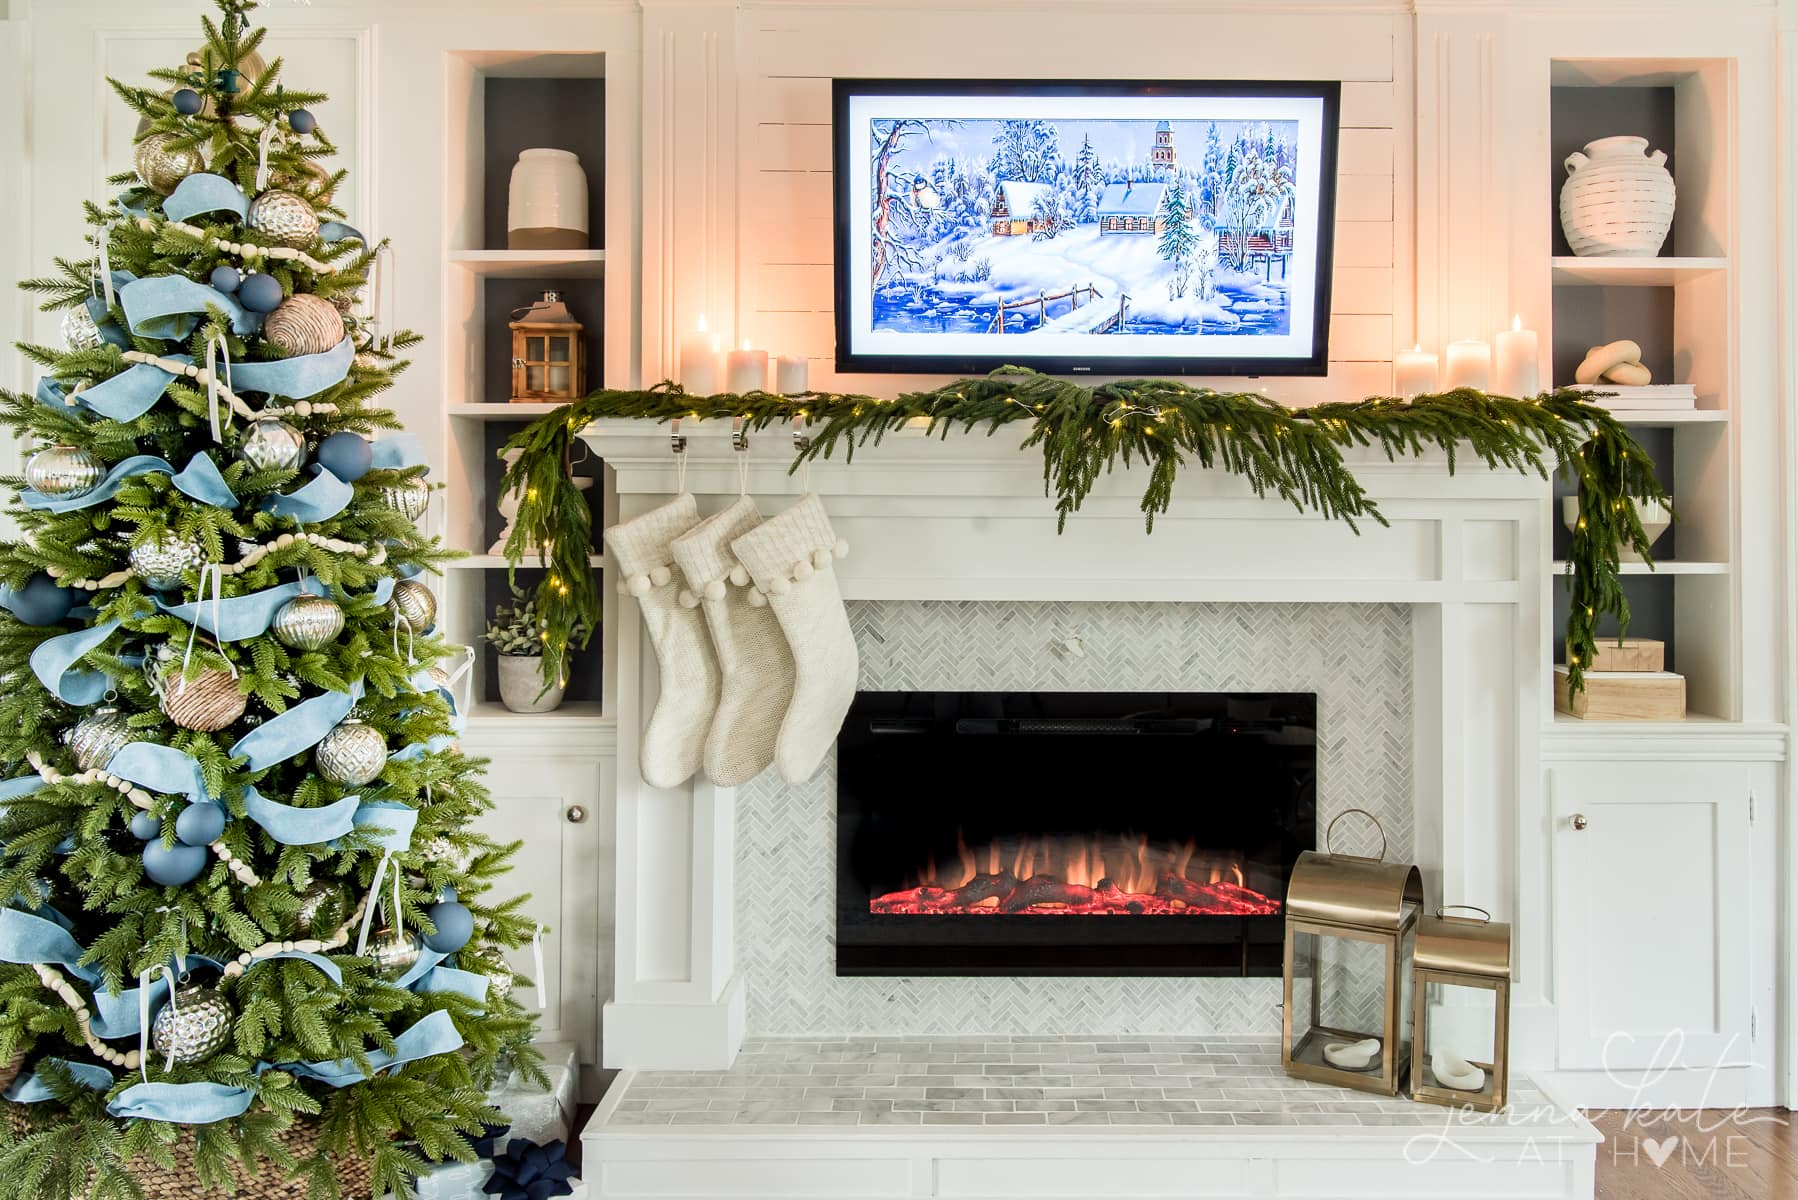 Living room fireplace and mantel with minimal garland and Christmas tree